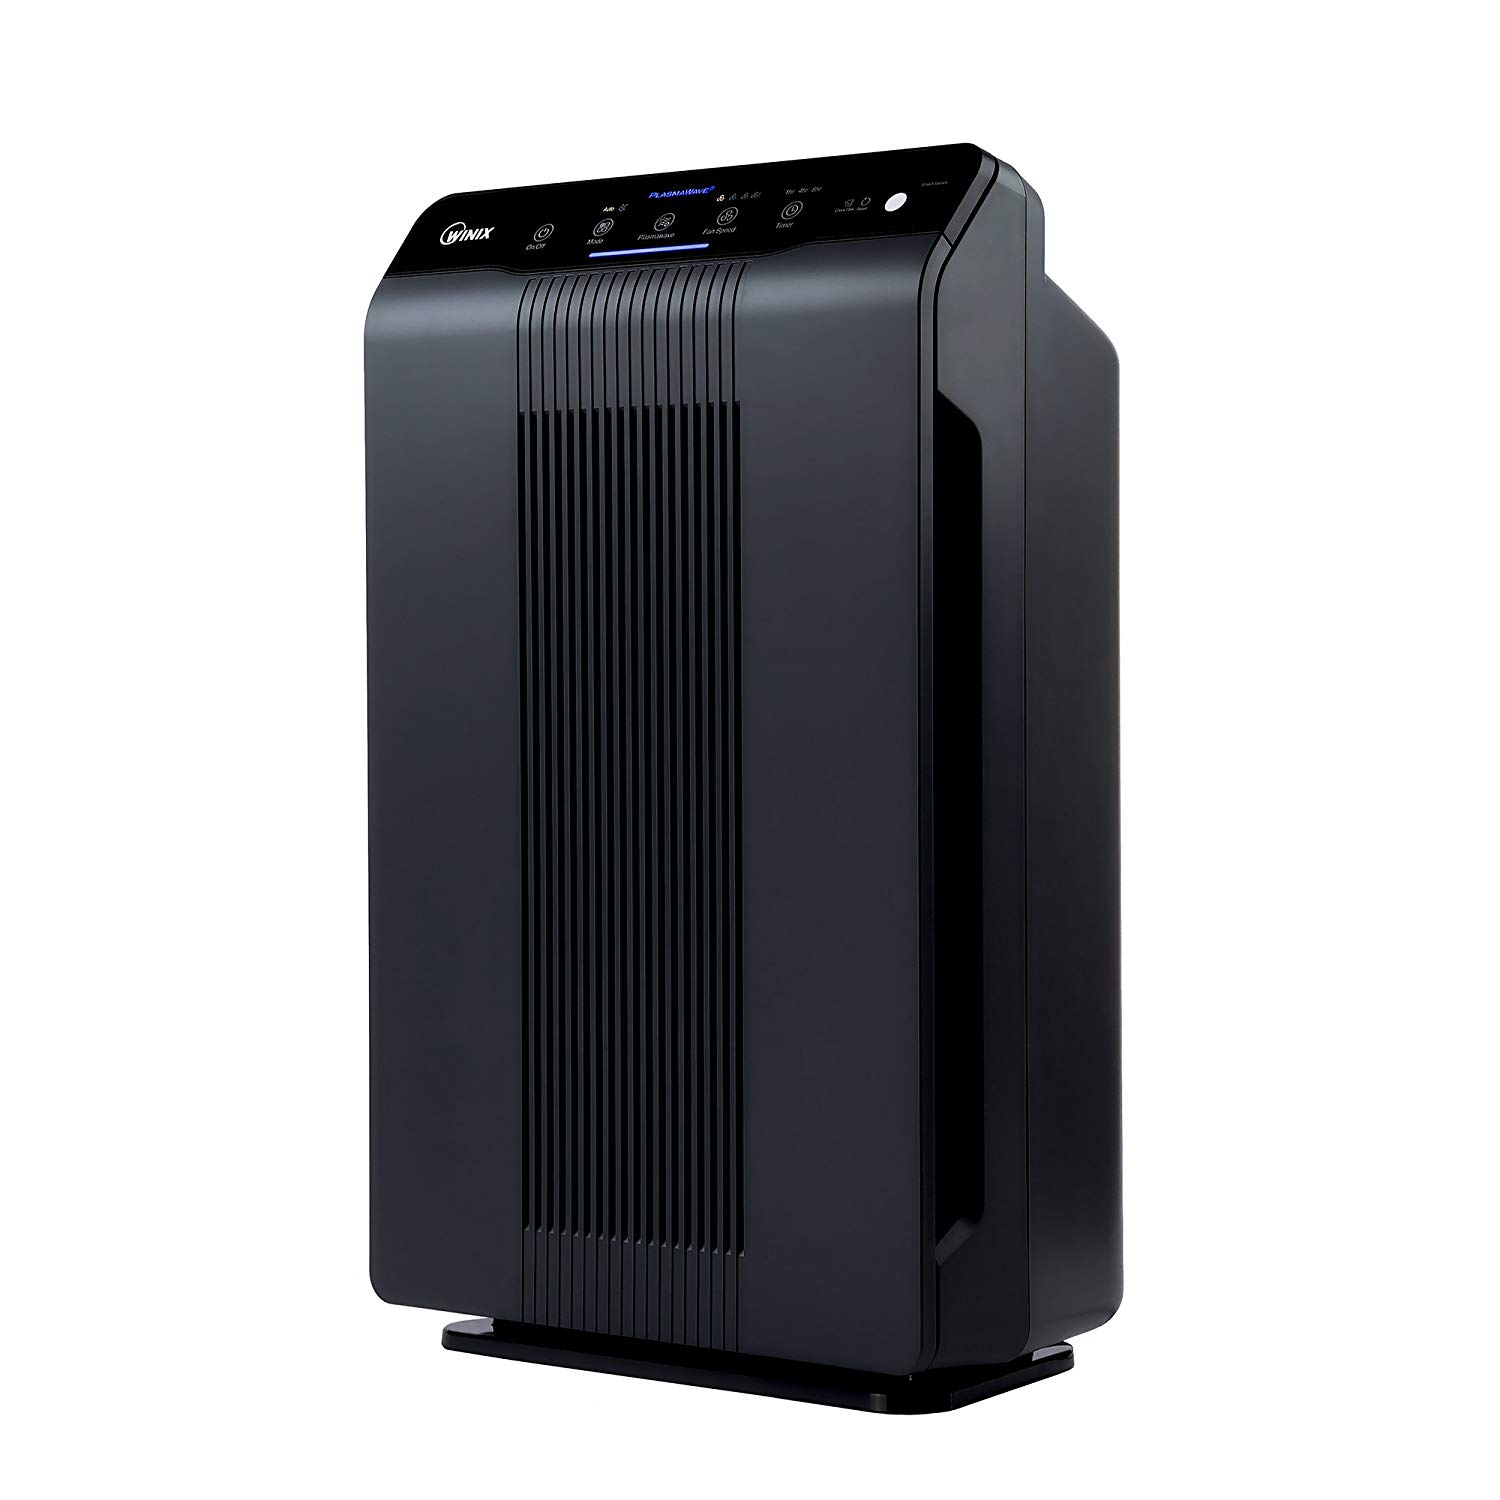 Best Air Purifier for Odor Elimination - #3 Best Budget Air Purifier - Winix 5500-2